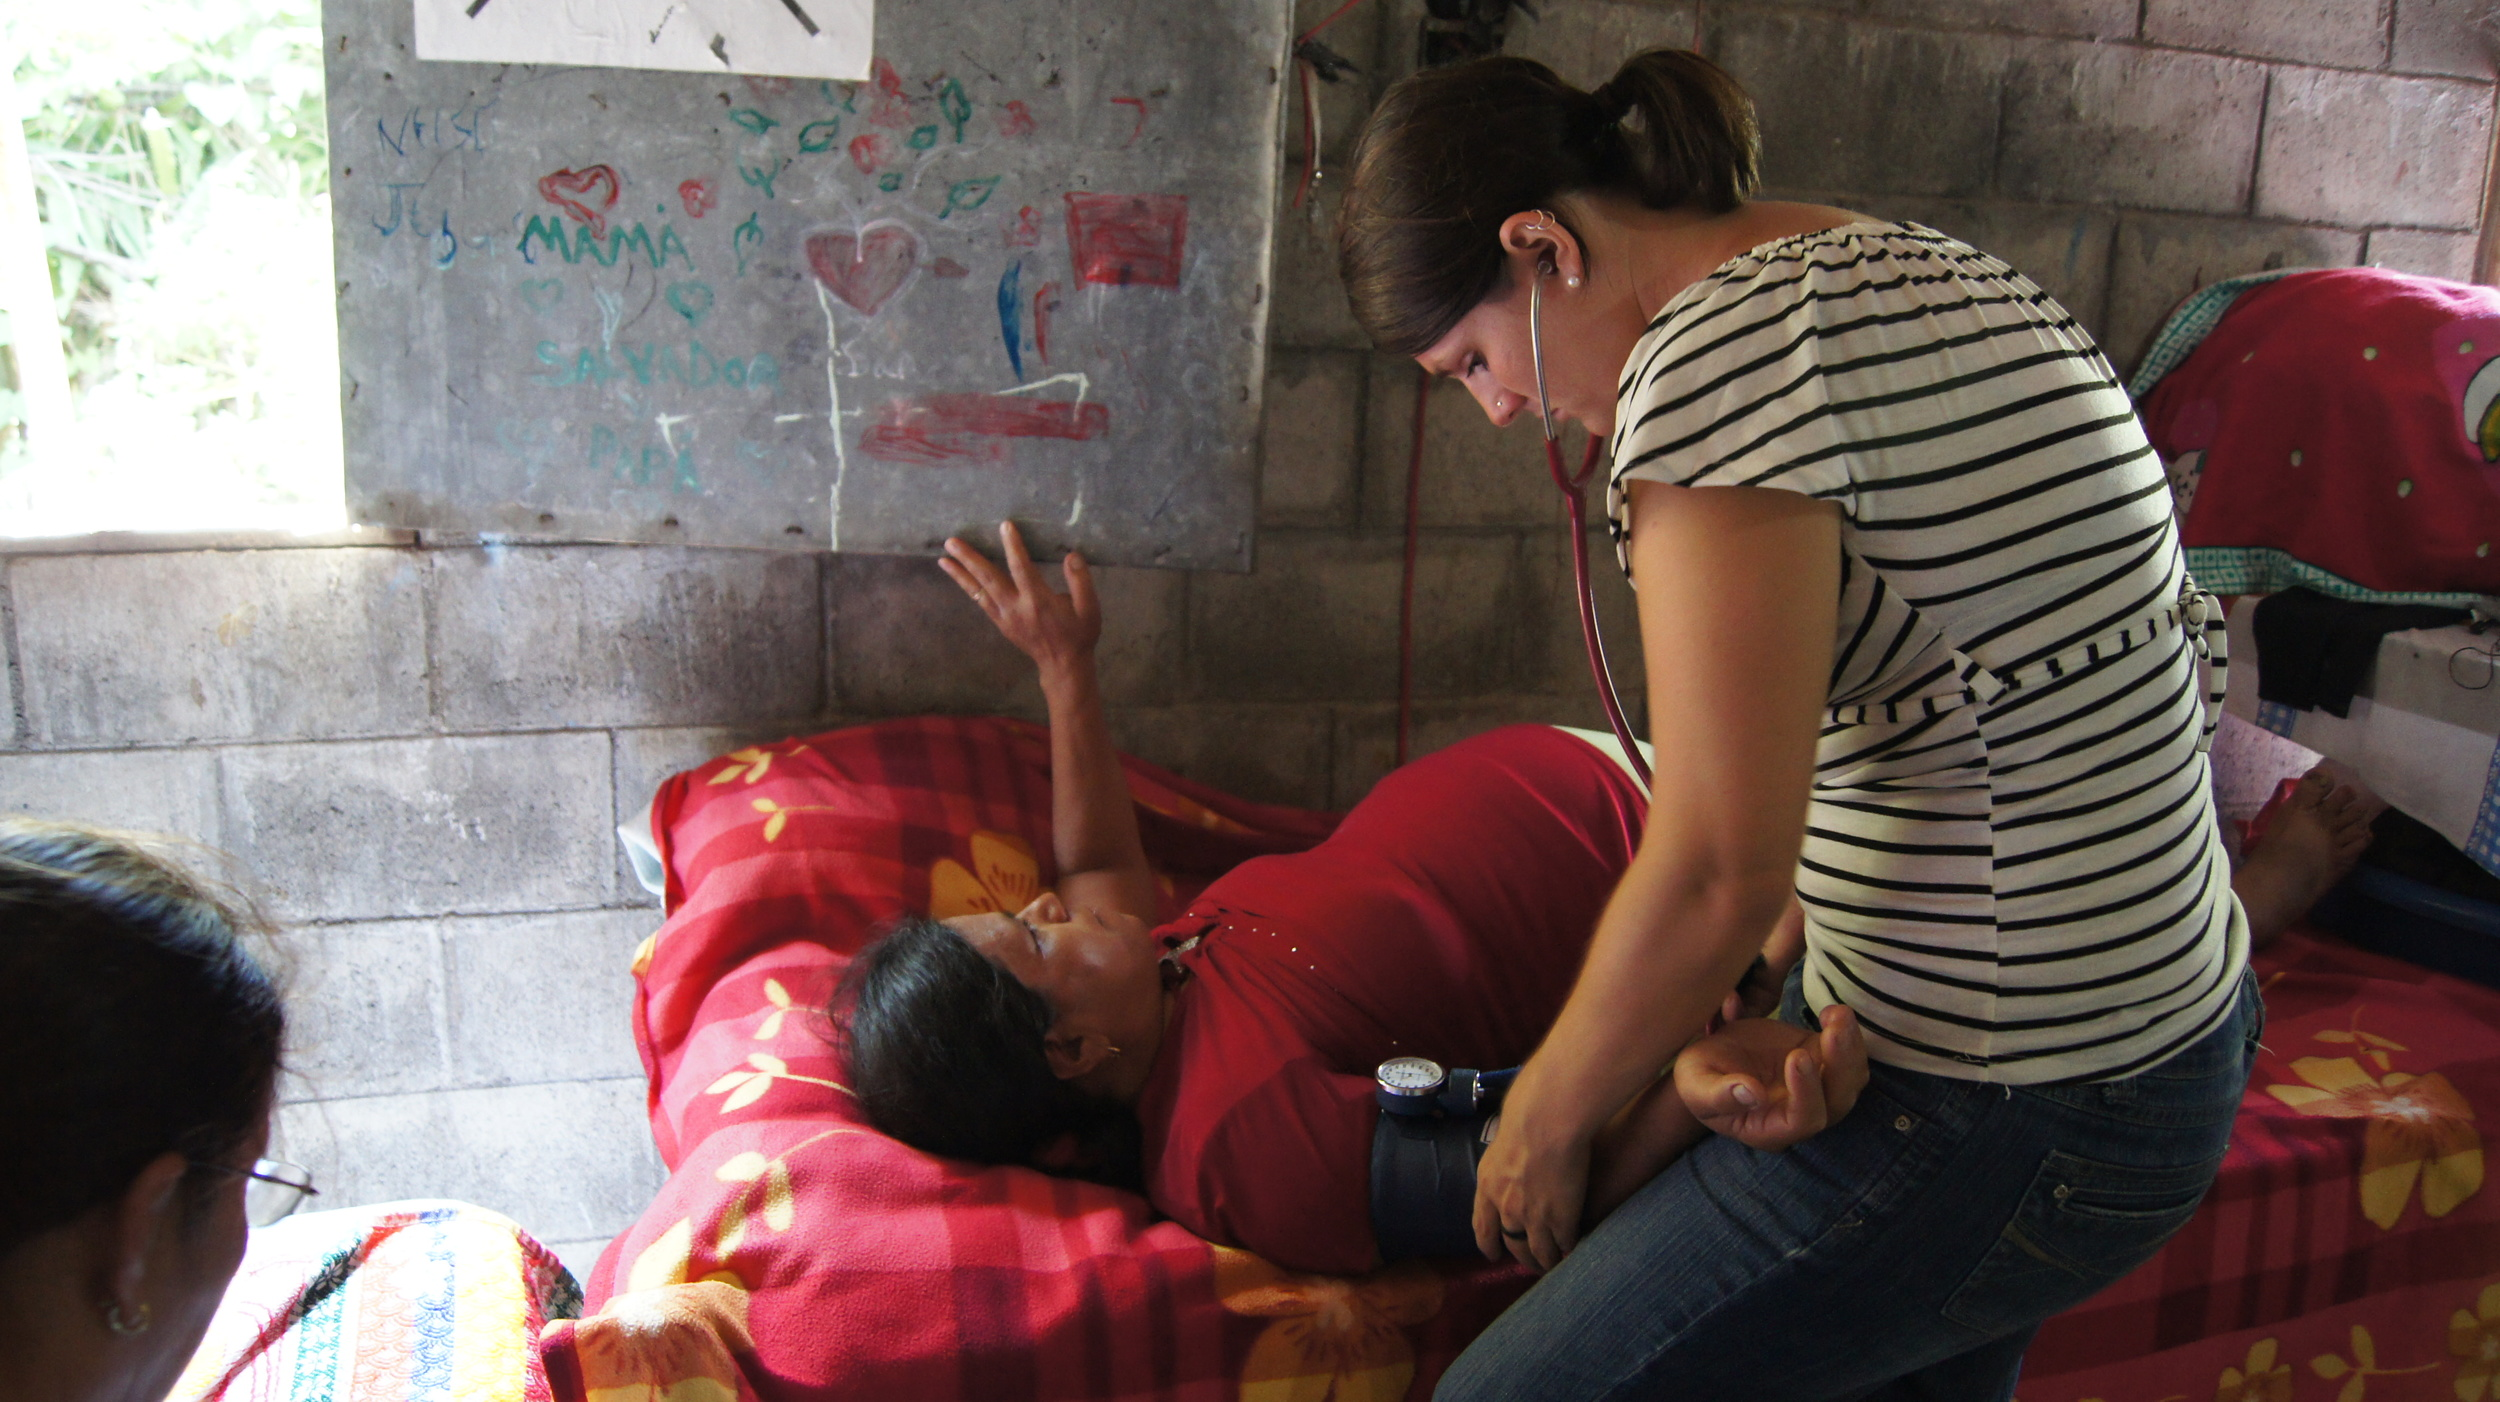 Elise Buckner, a NOVA doula and childbirth educator, assisted with prenatal care and in the process of labor with indigenous midwives in El Salvador.